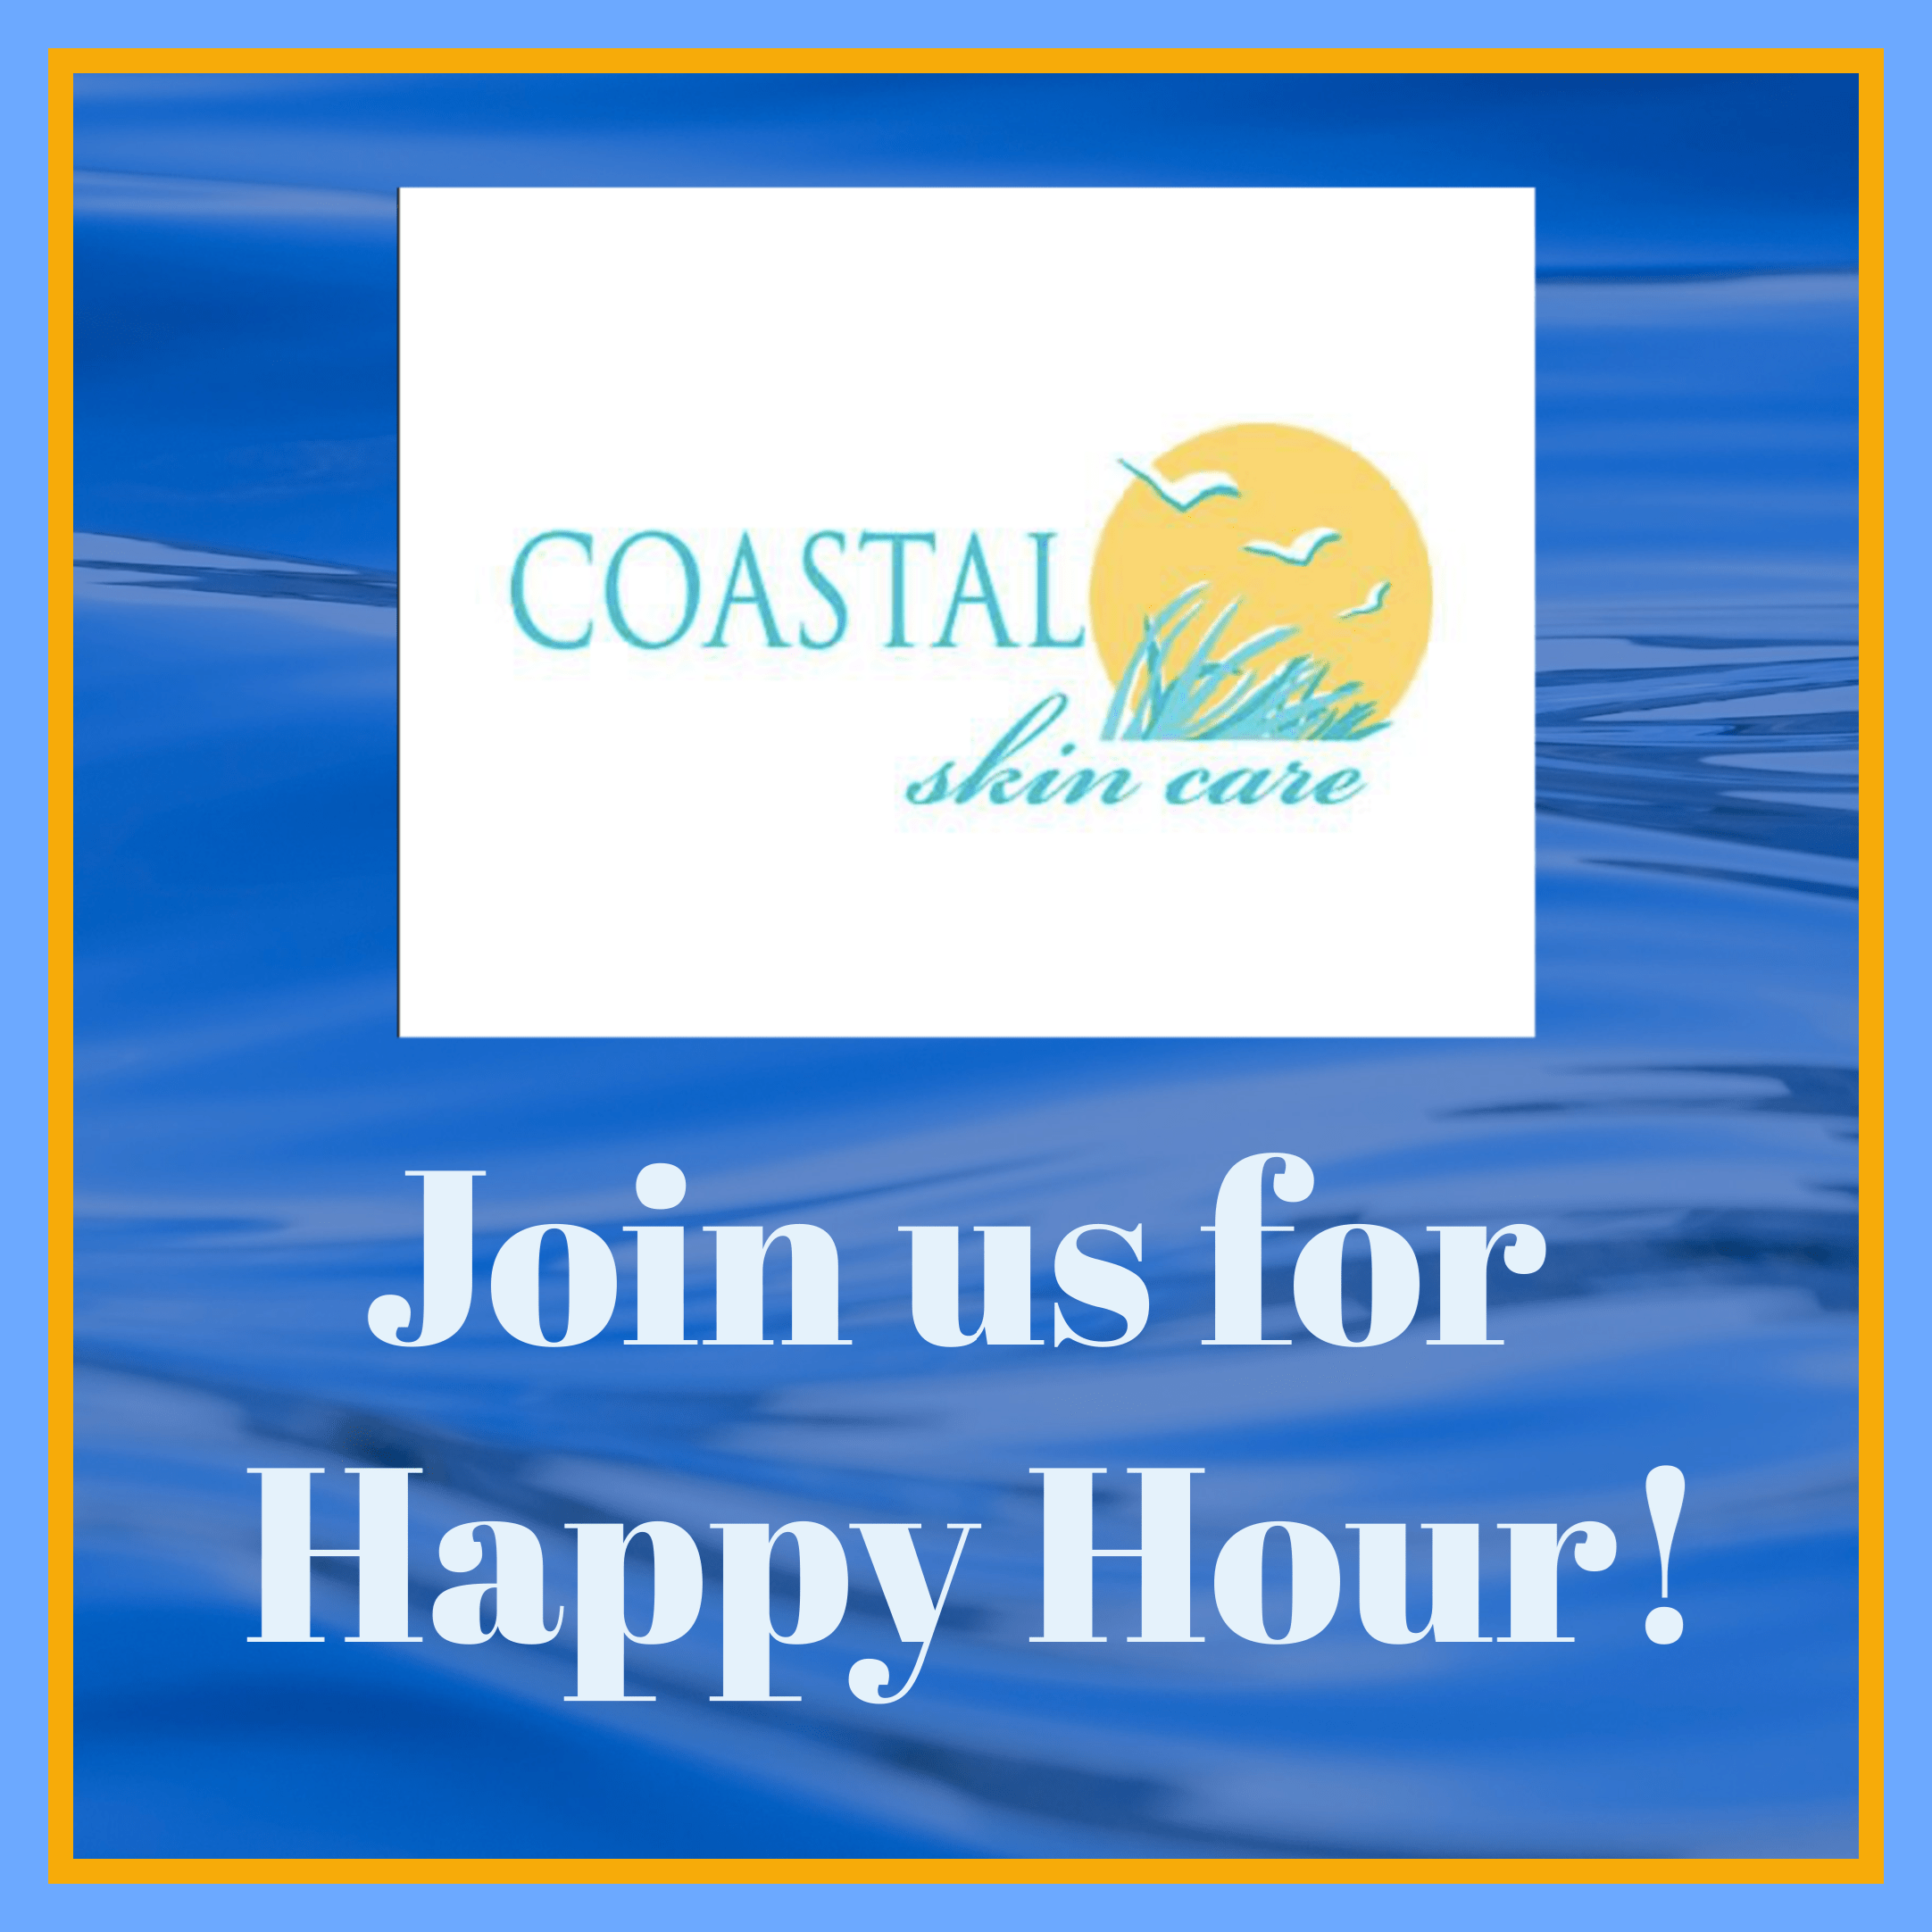 Coastal Skin Care - Join us for Happy Hour!